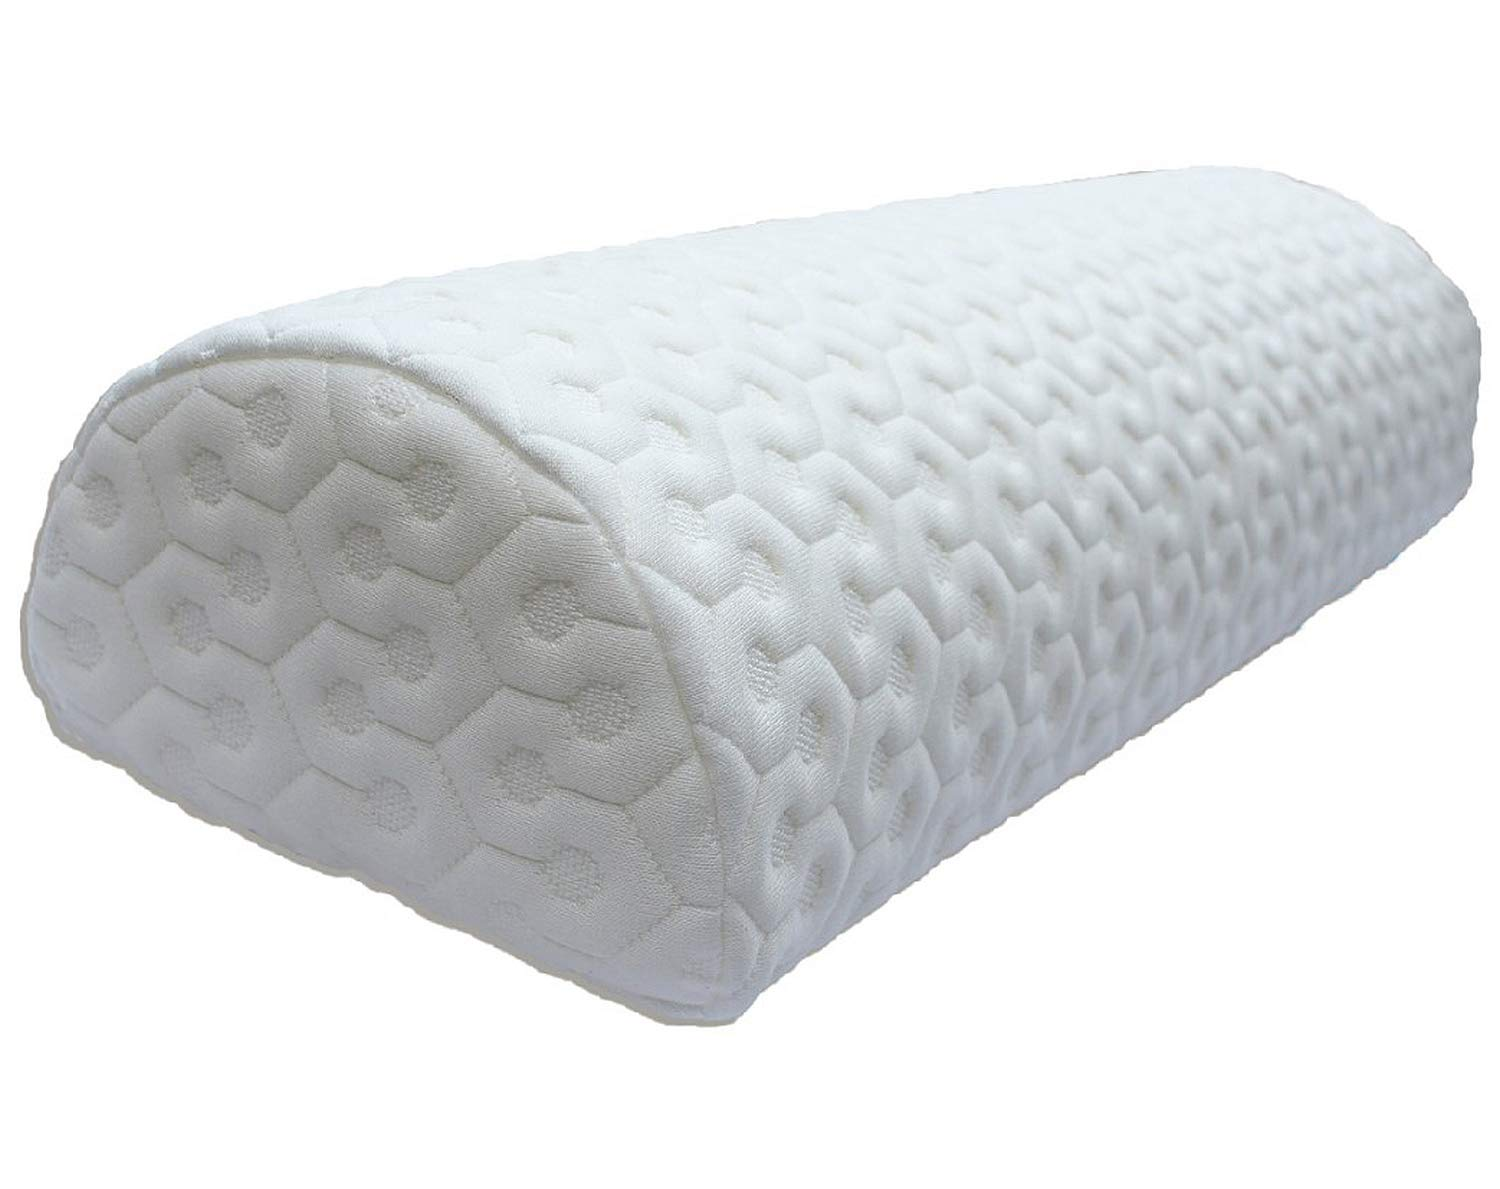 Joey's Room Half Moon Pillow   Bolster for Leg Elevation and Lower Back and Knee Support for Side Sleeper   Honeycomb Heavyweight Removable Cover